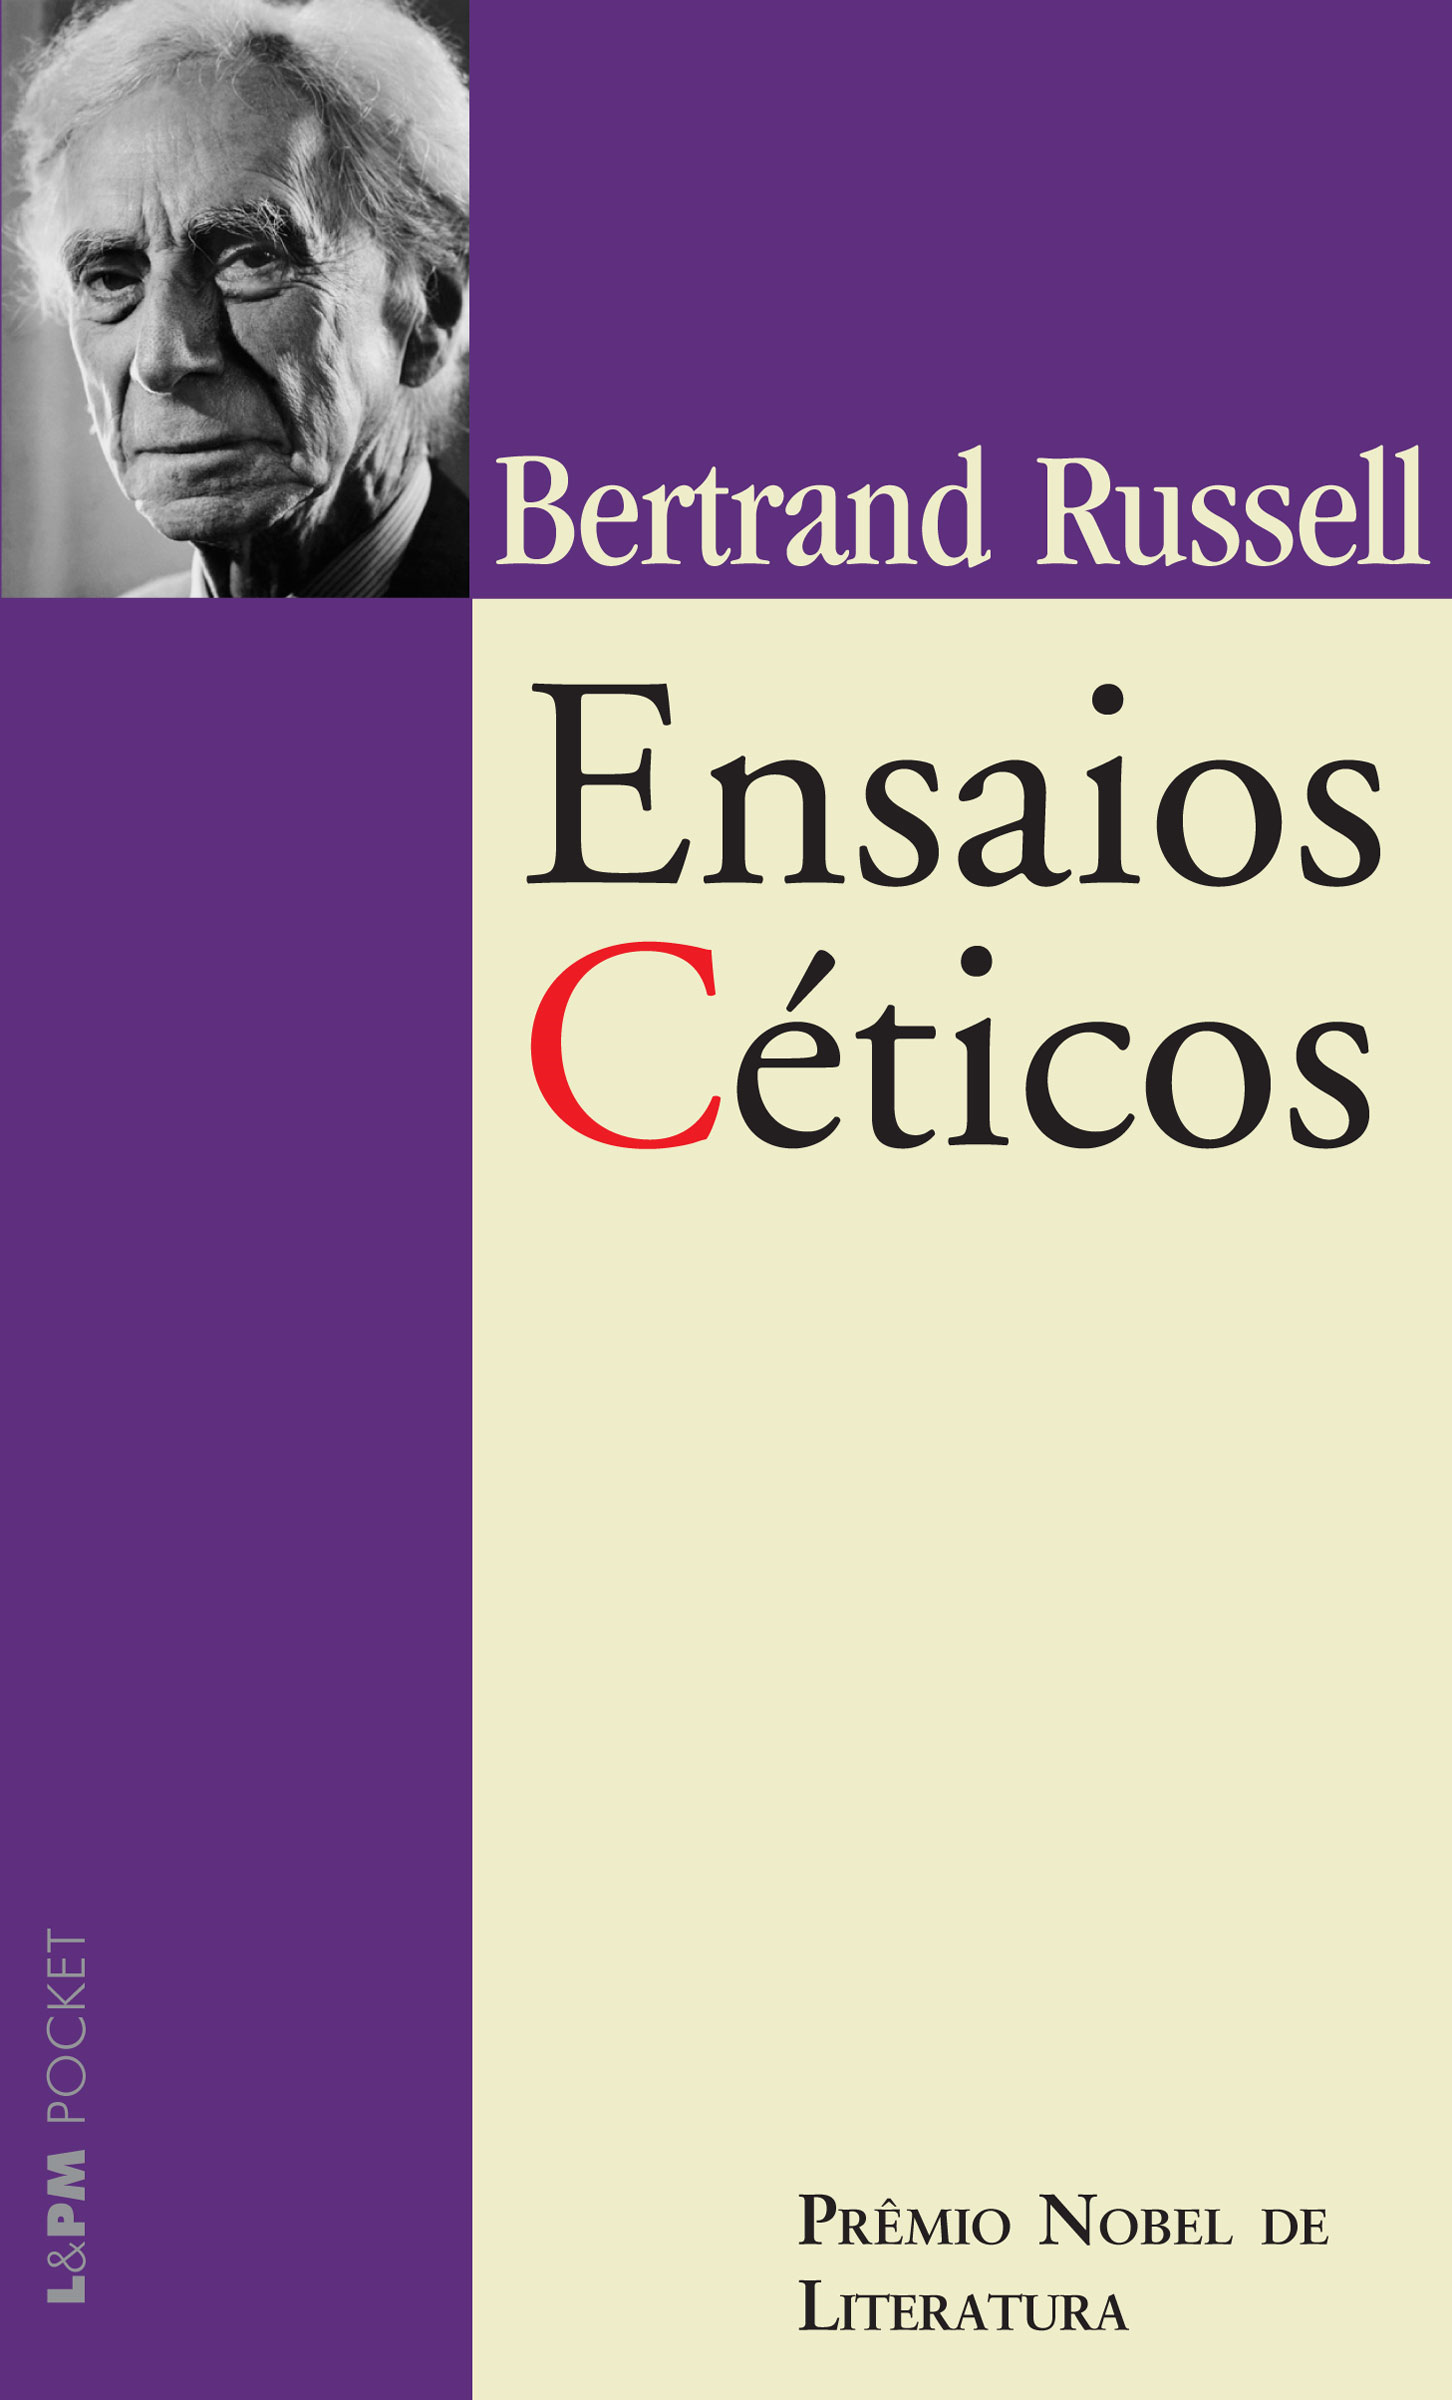 bertrand russell sceptical essays review